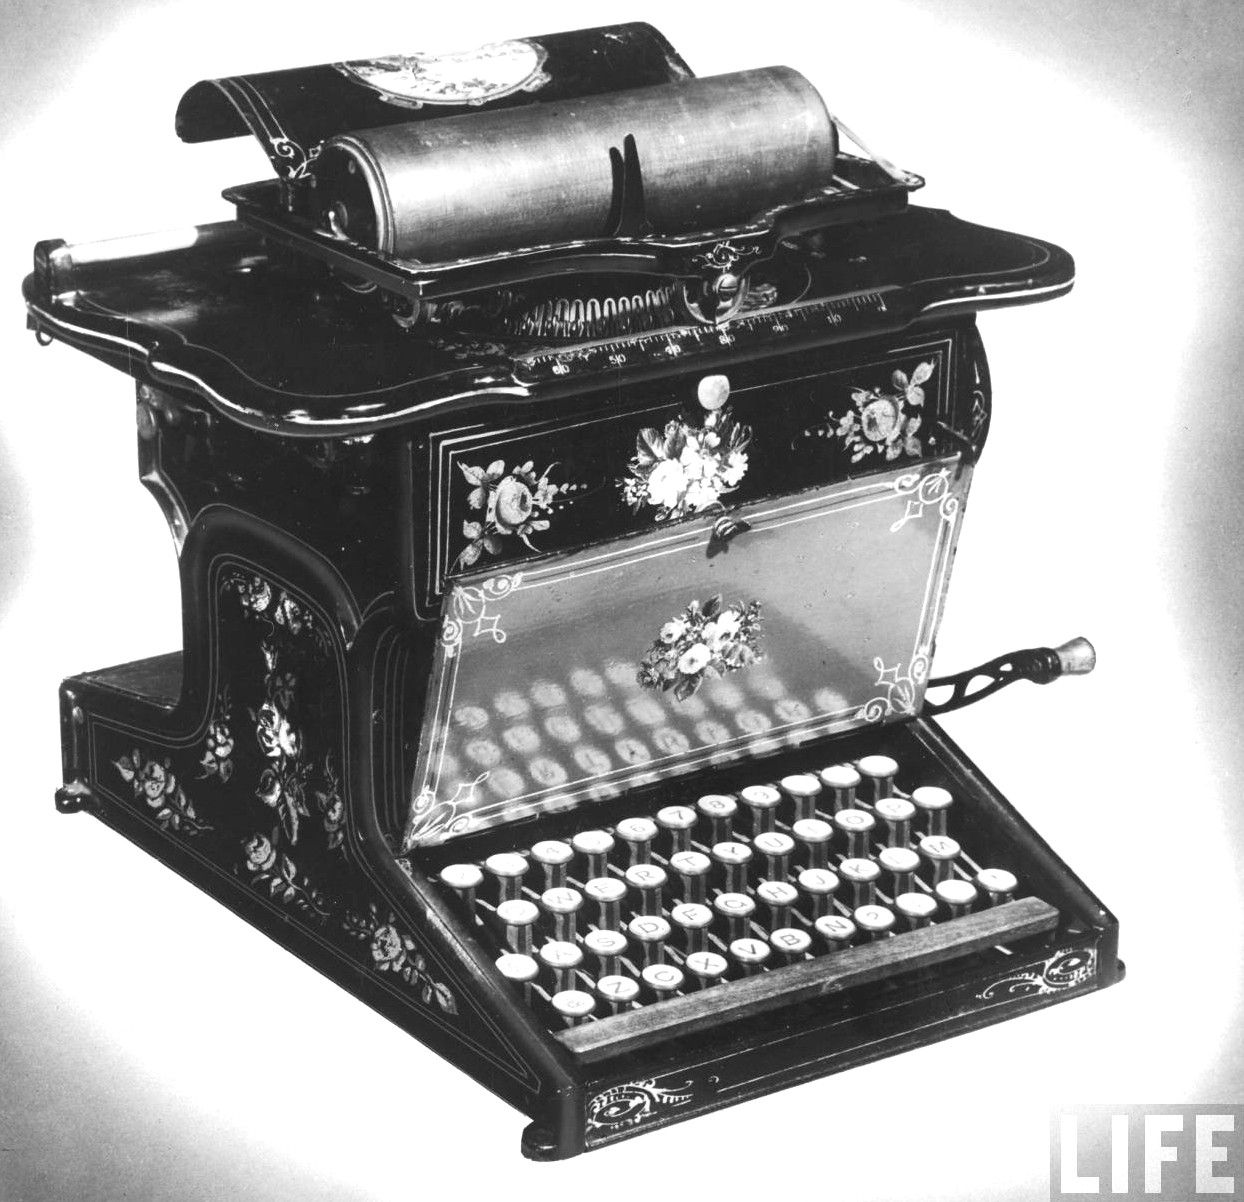 typewriter Charles Thurber in 1843. This was the first